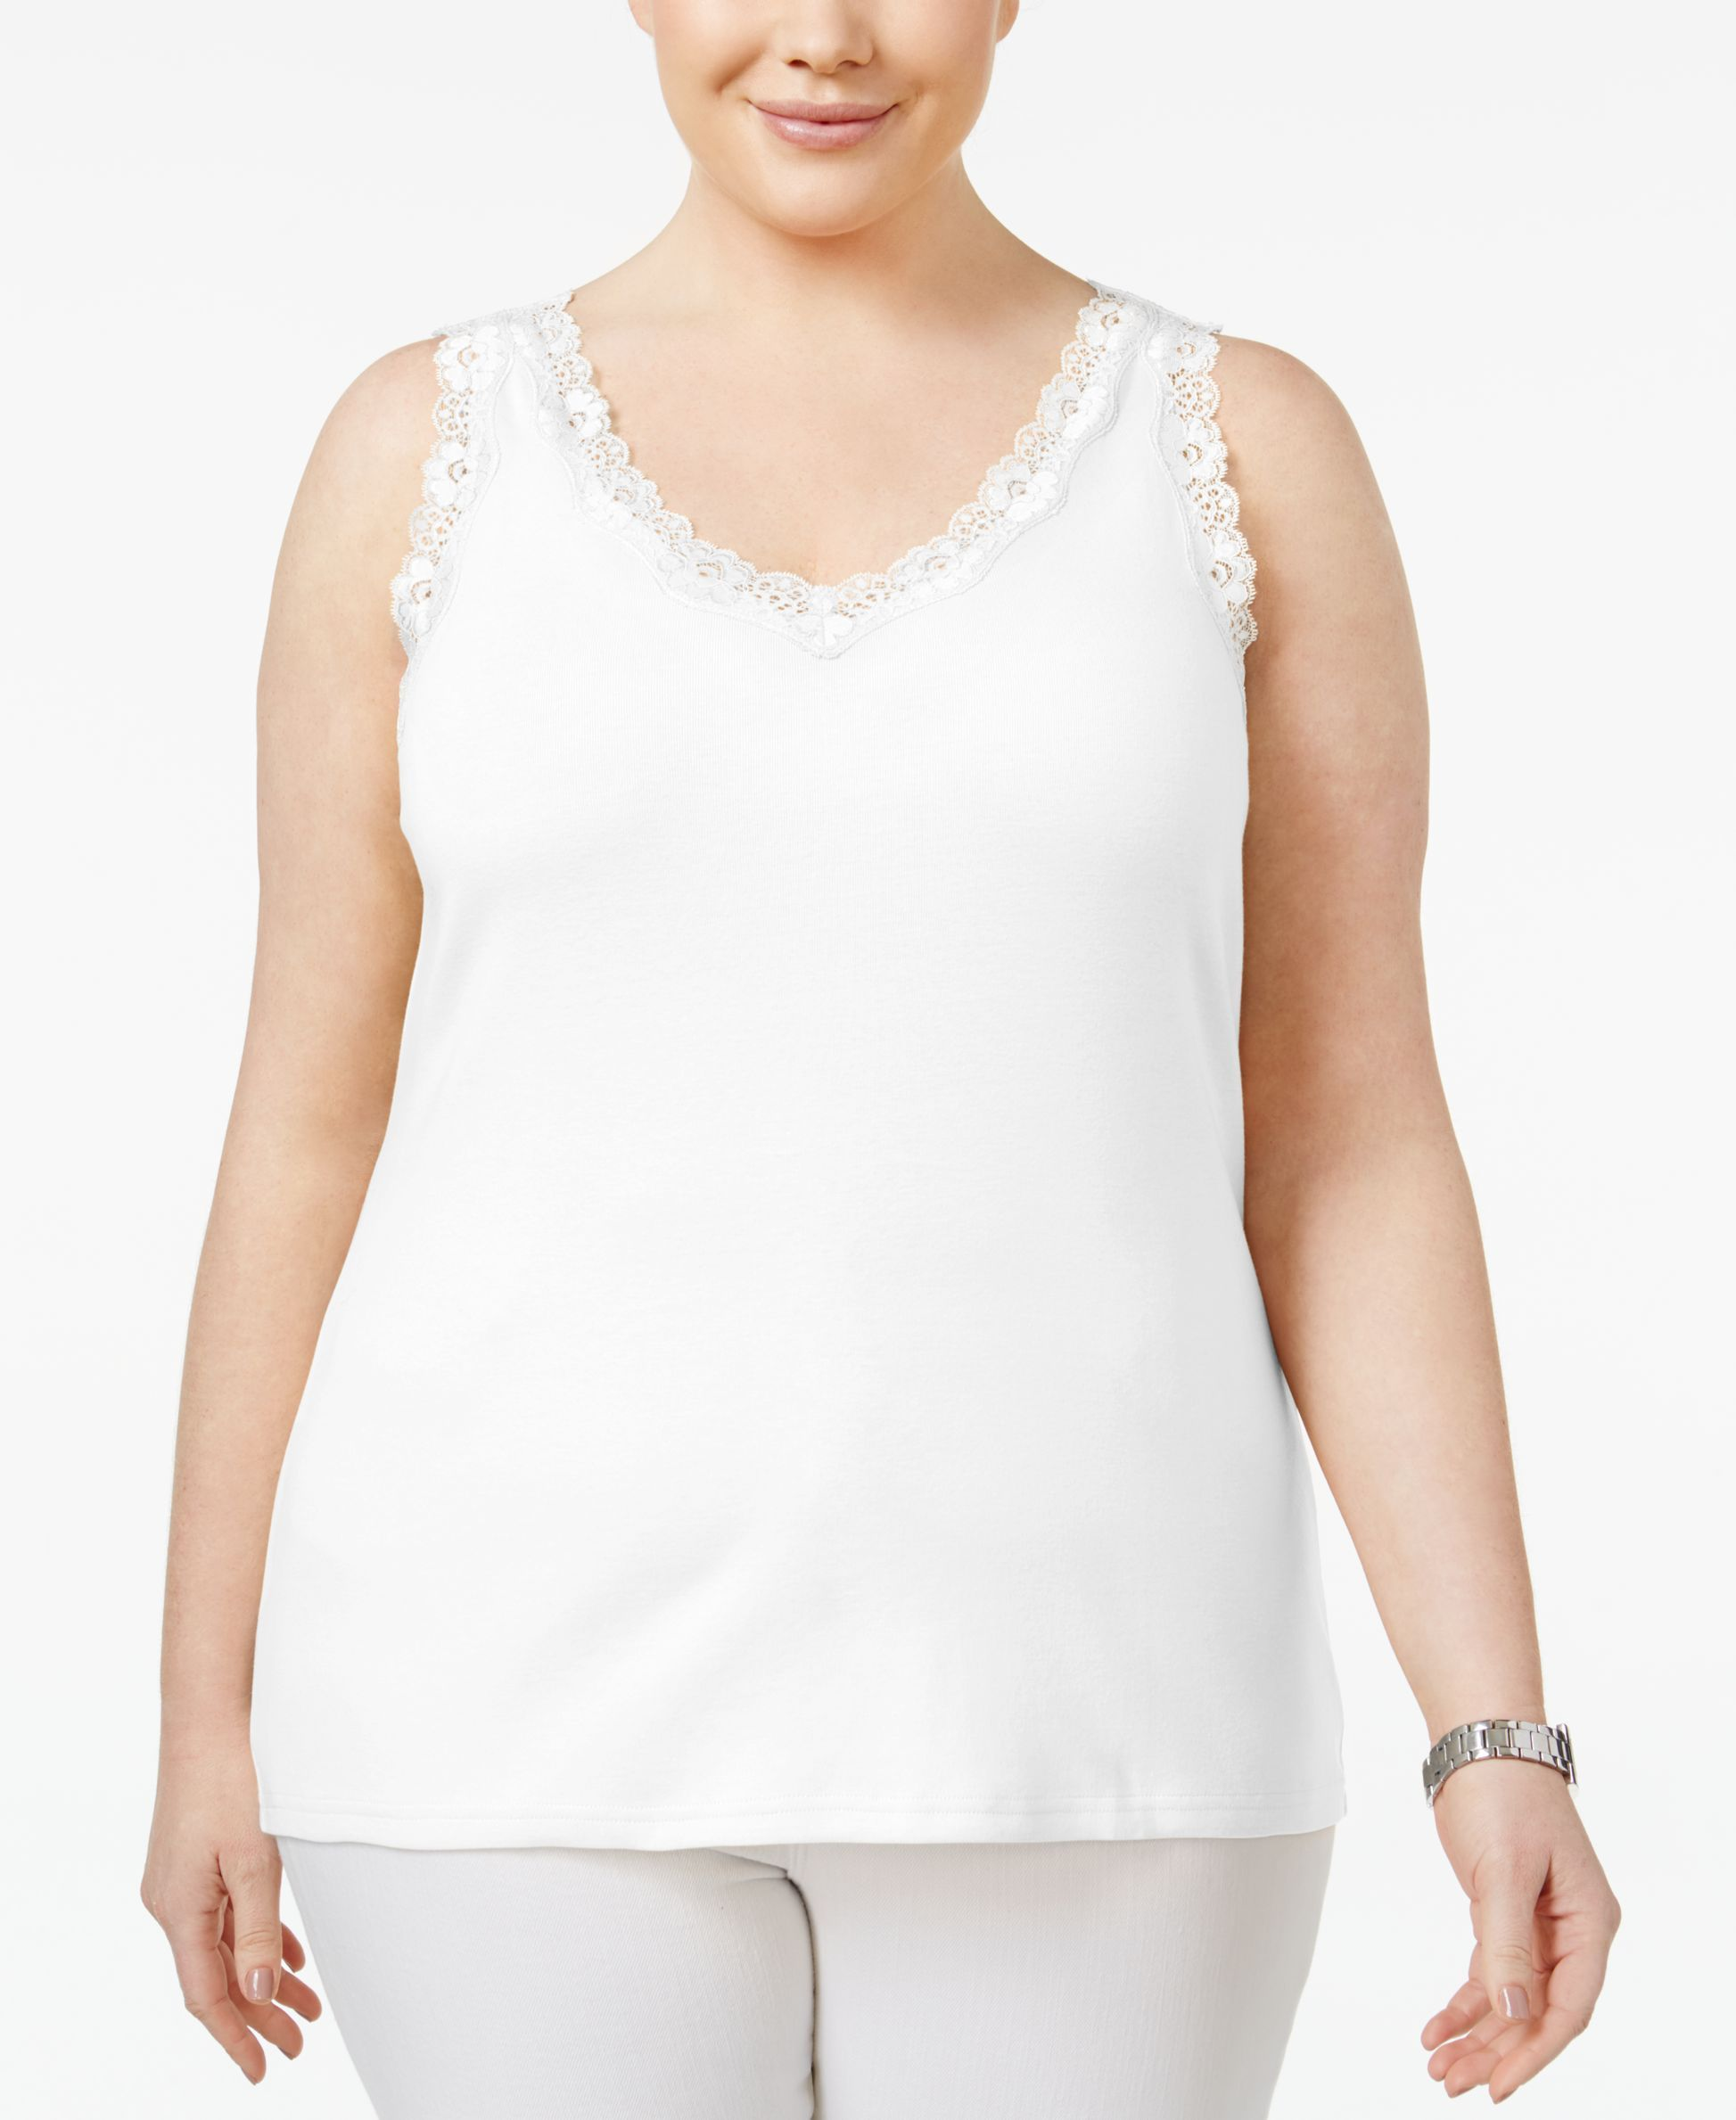 525a422355f6f Karen Scott Plus Size Cotton Lace-Trim Tank